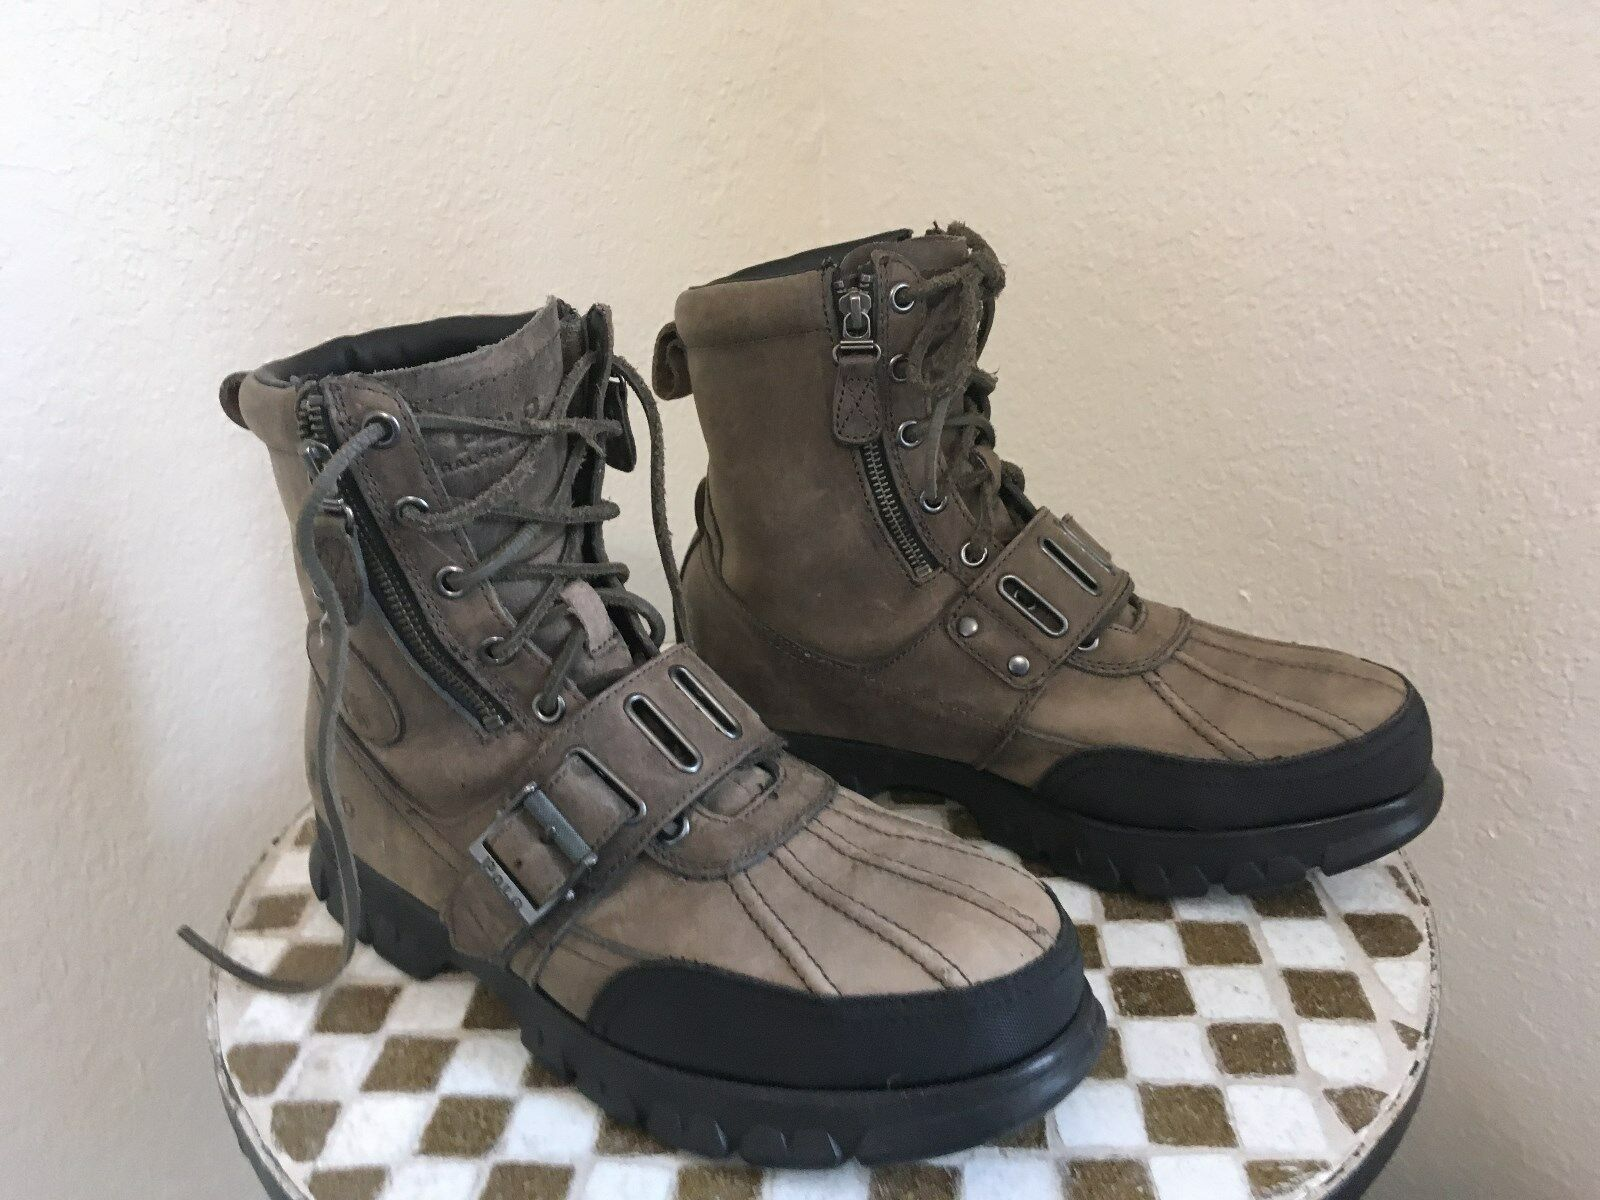 ANDRES RALPH LAREN POLO 11 DISTRESSED VINTAGE URBAN TRAIL Stiefel 11 POLO D 33bd5f